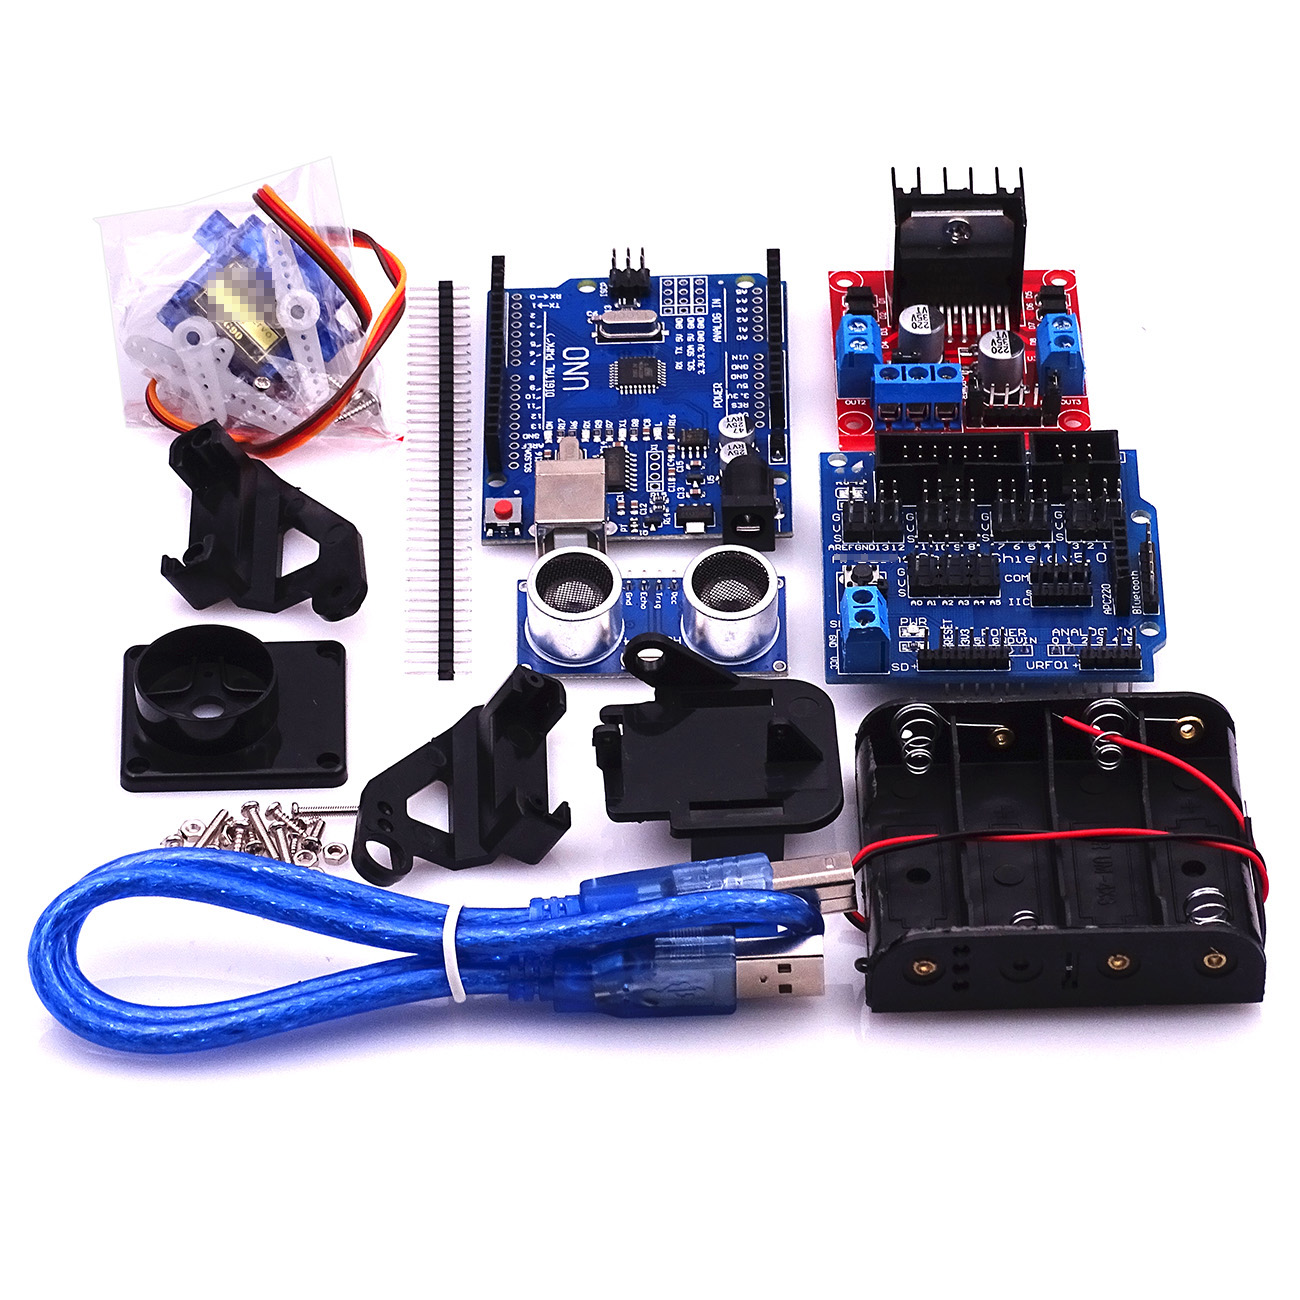 US $16 2  New Avoidance tracking Motor Smart Robot Car Chassis Kit Speed  Encoder Battery Box 2WD Ultrasonic module For Arduin kit-in Electronics